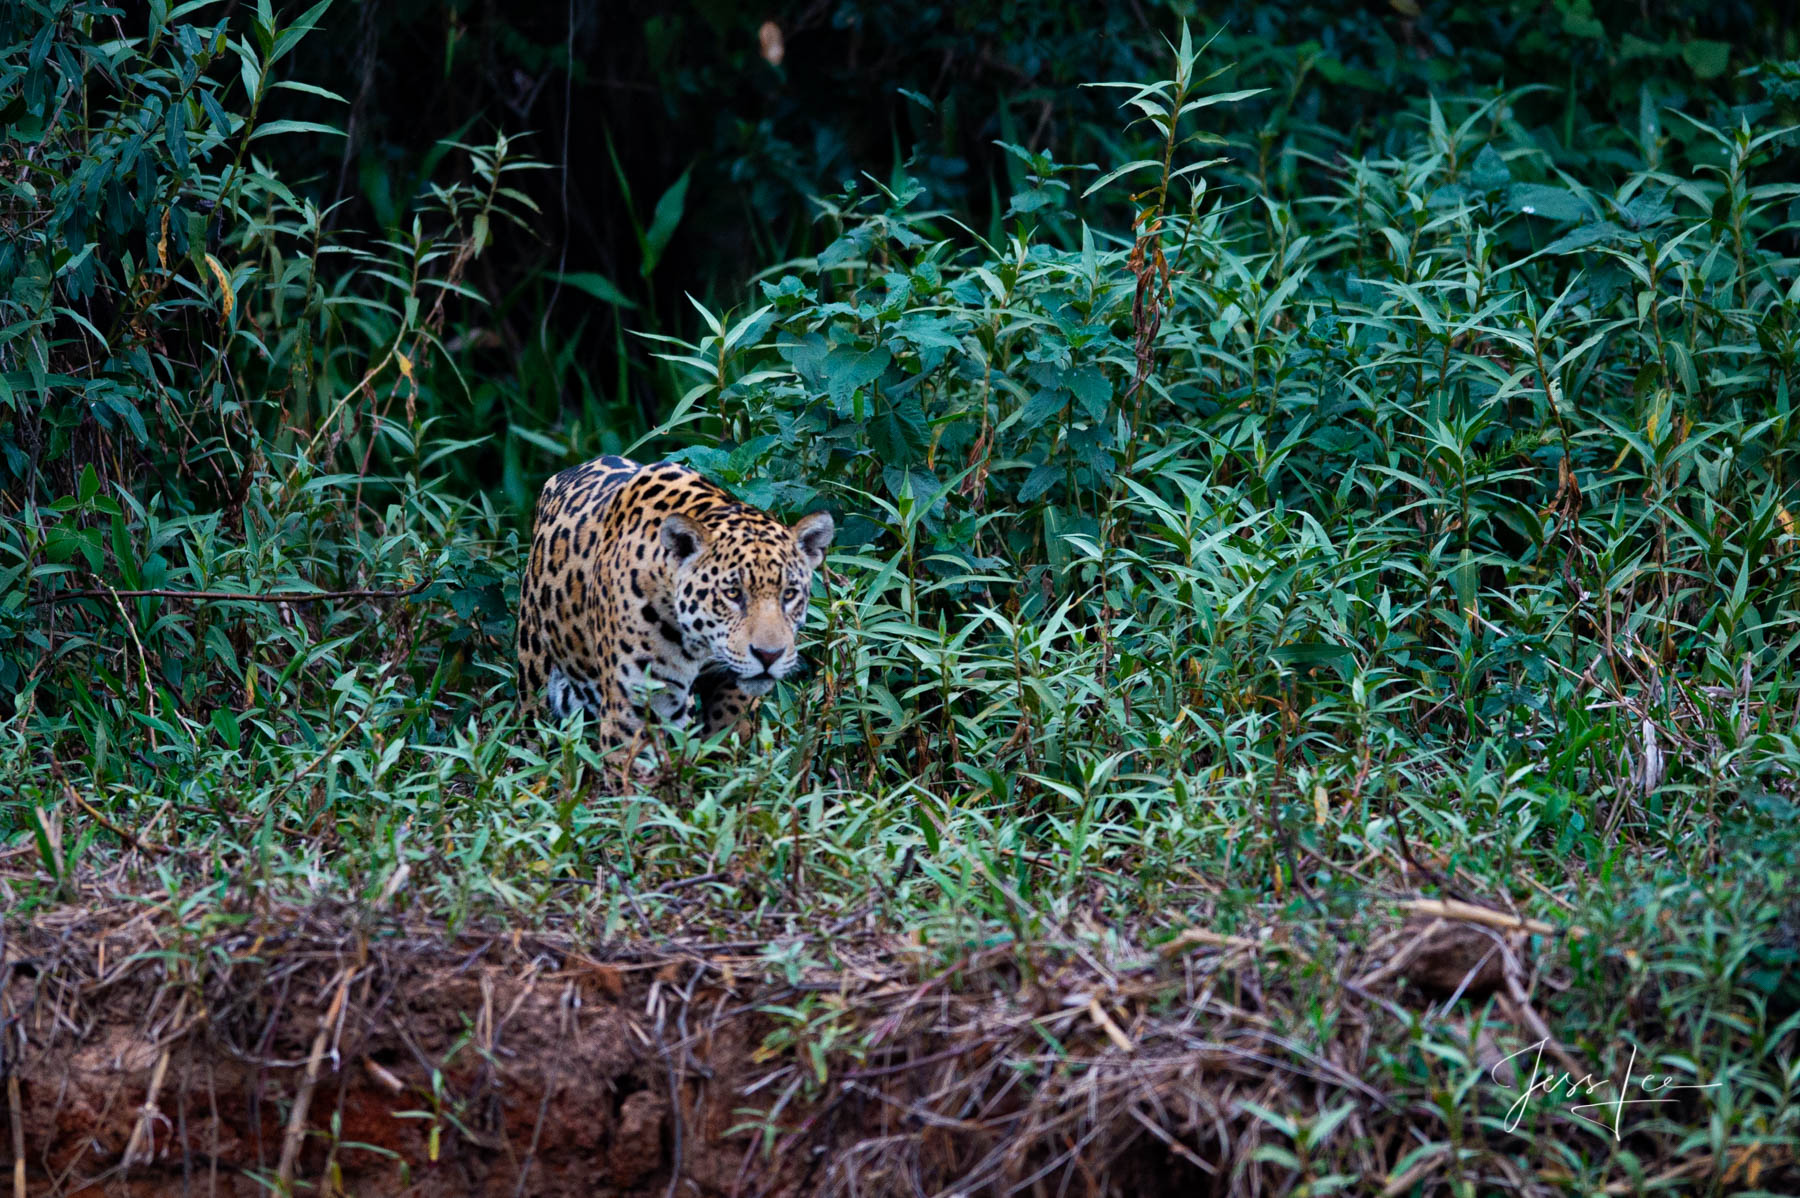 Fine art Jaguar in the brush print limited edition of 300 luxury prints by Jess Lee. All photographs copyright © Jess Lee